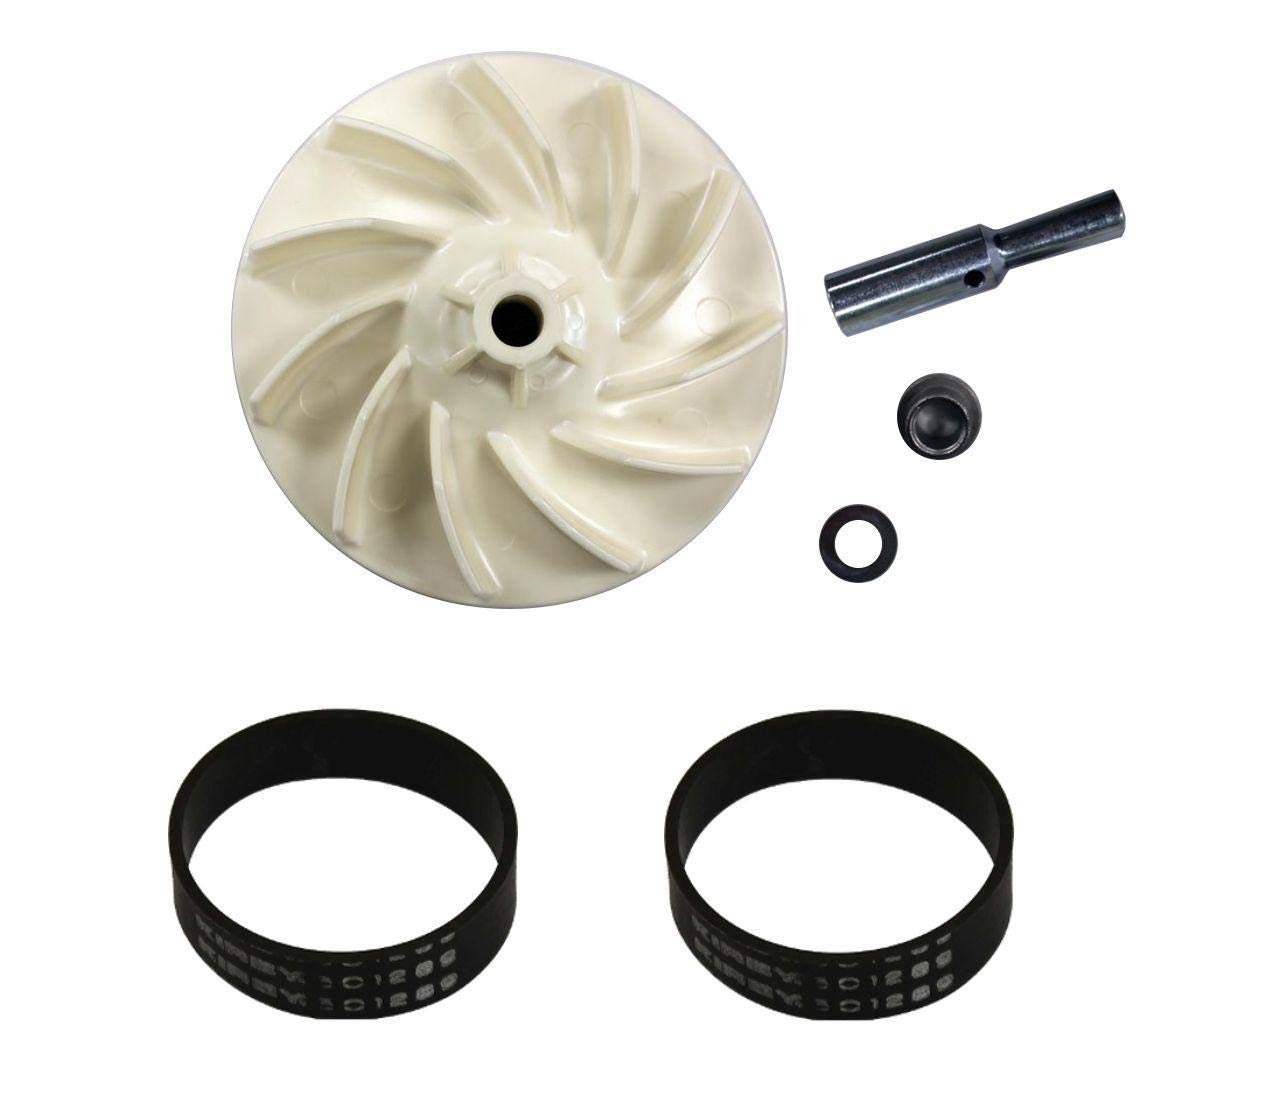 New Vacuum Pars Kirby Heritage and Legend Impeller Fan and (2) Belt Kit - New